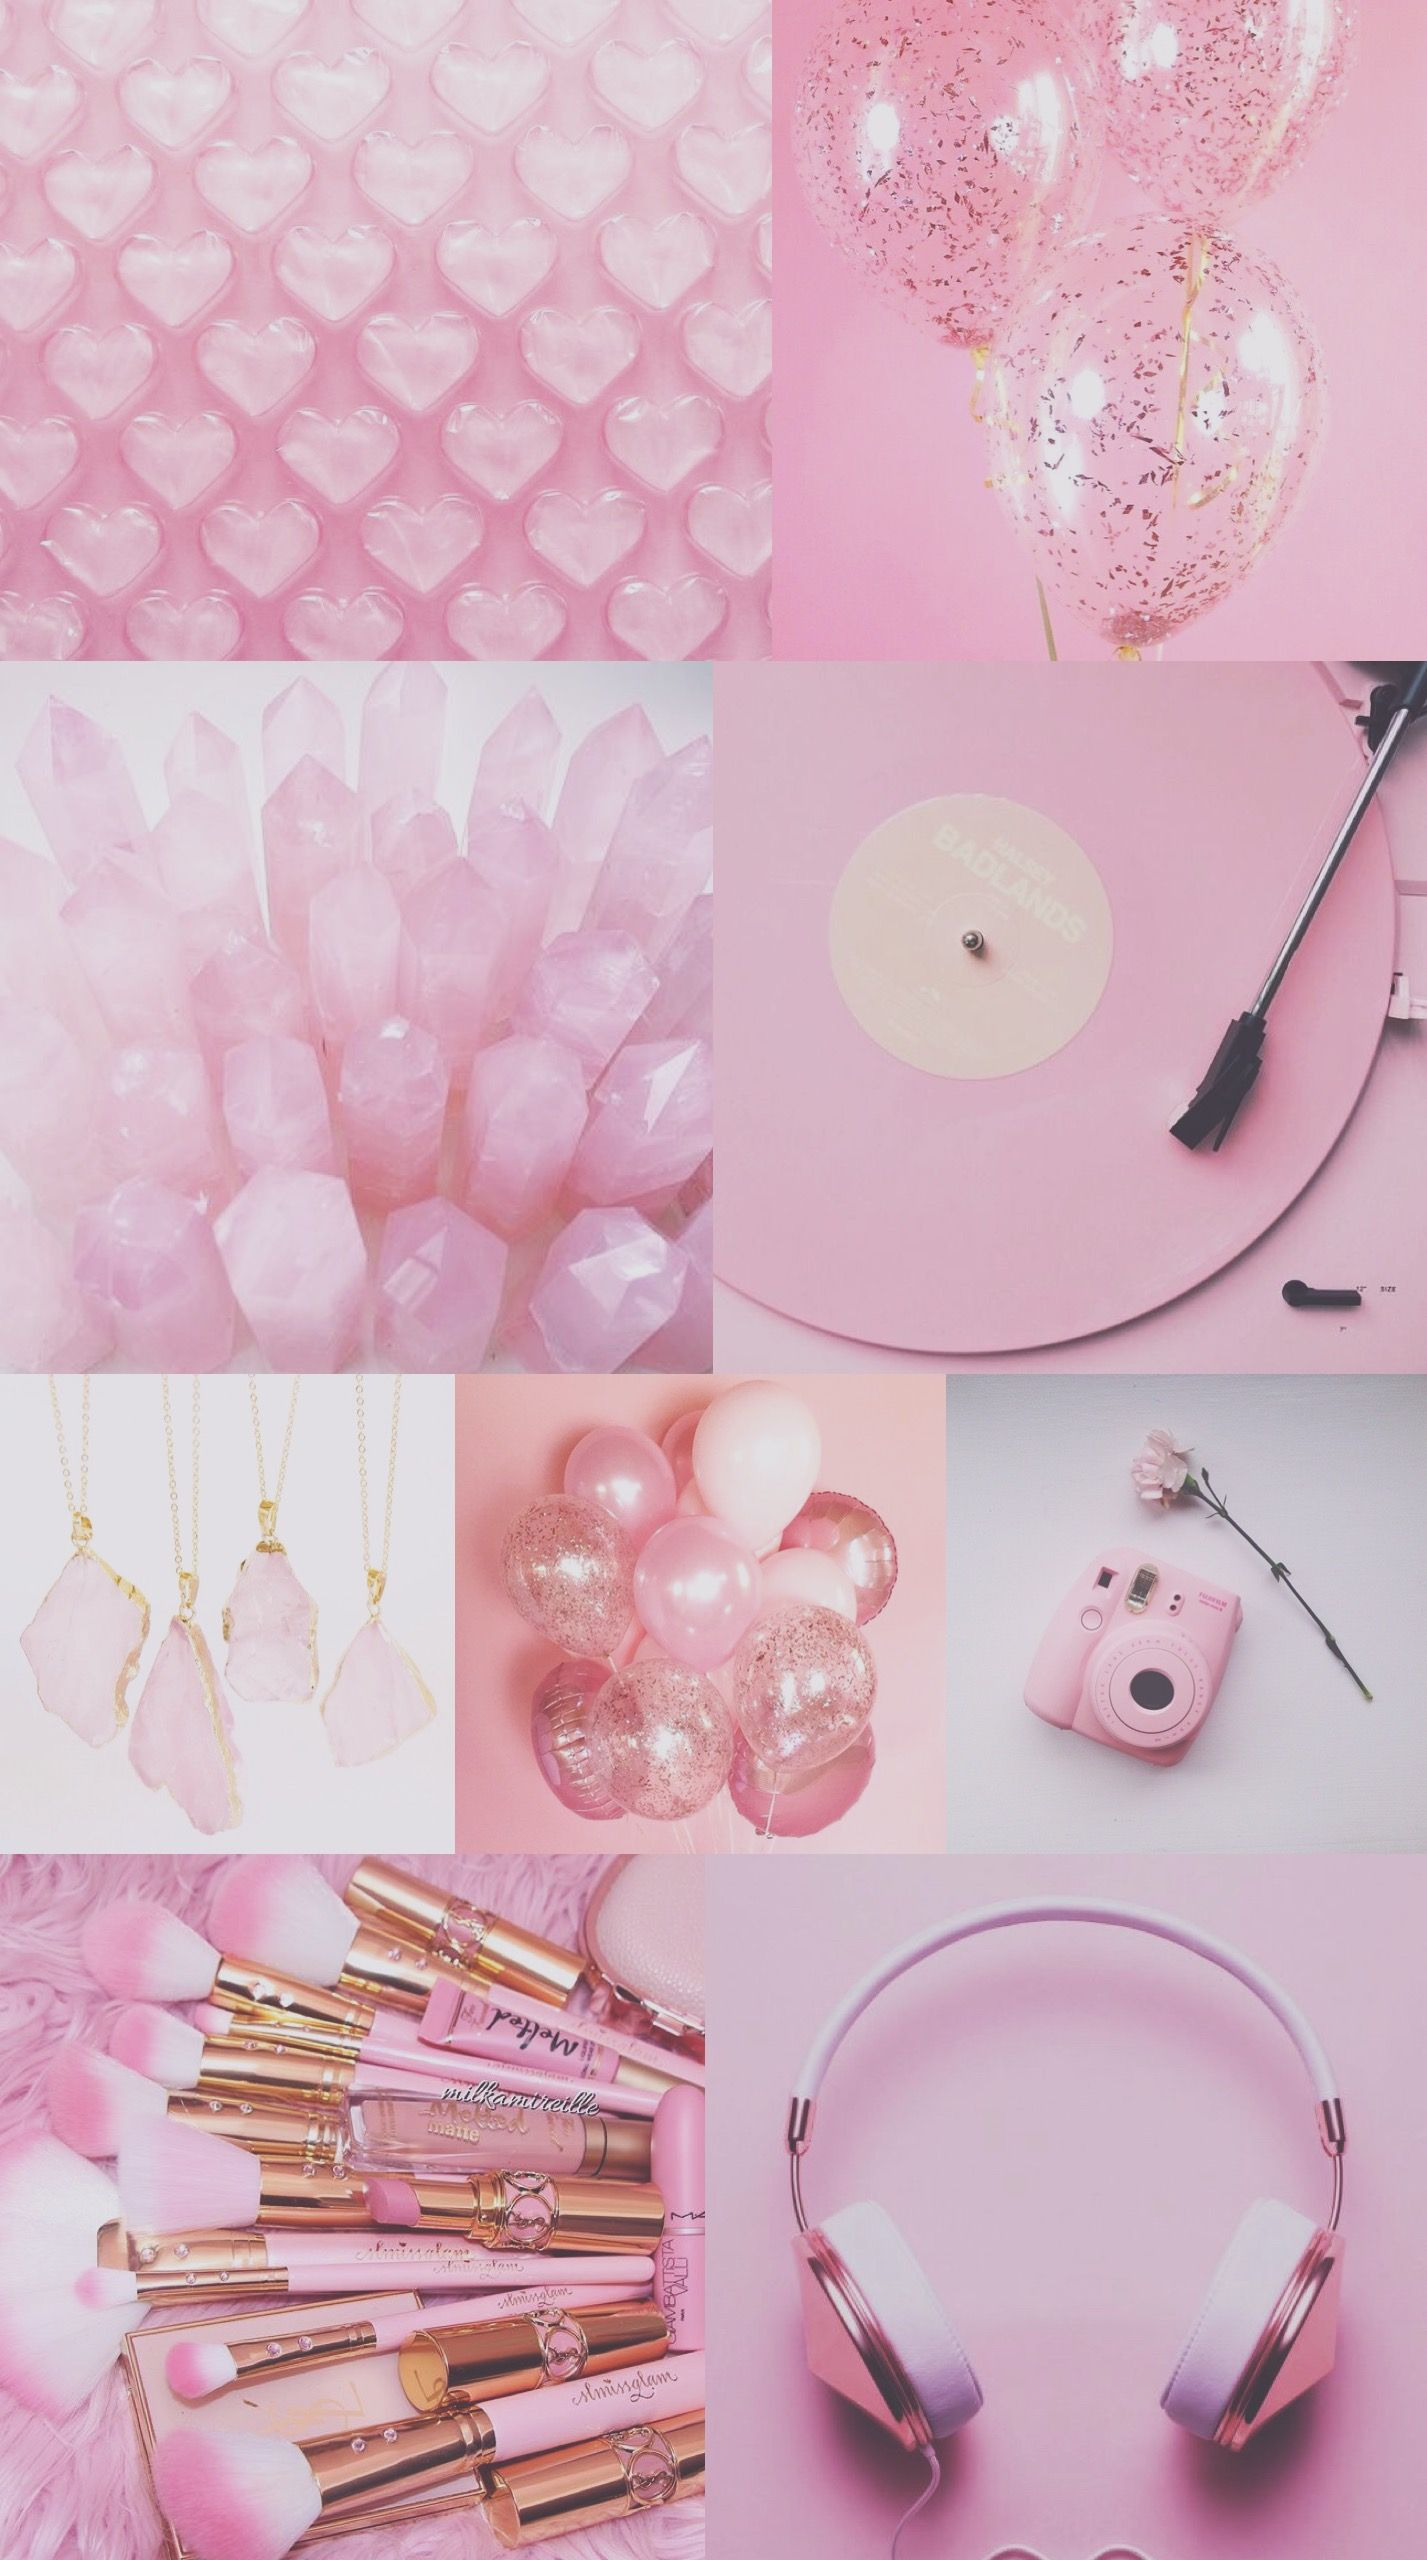 Wallpaper iphone android background glitter pink - Pastel pink wallpaper hd ...